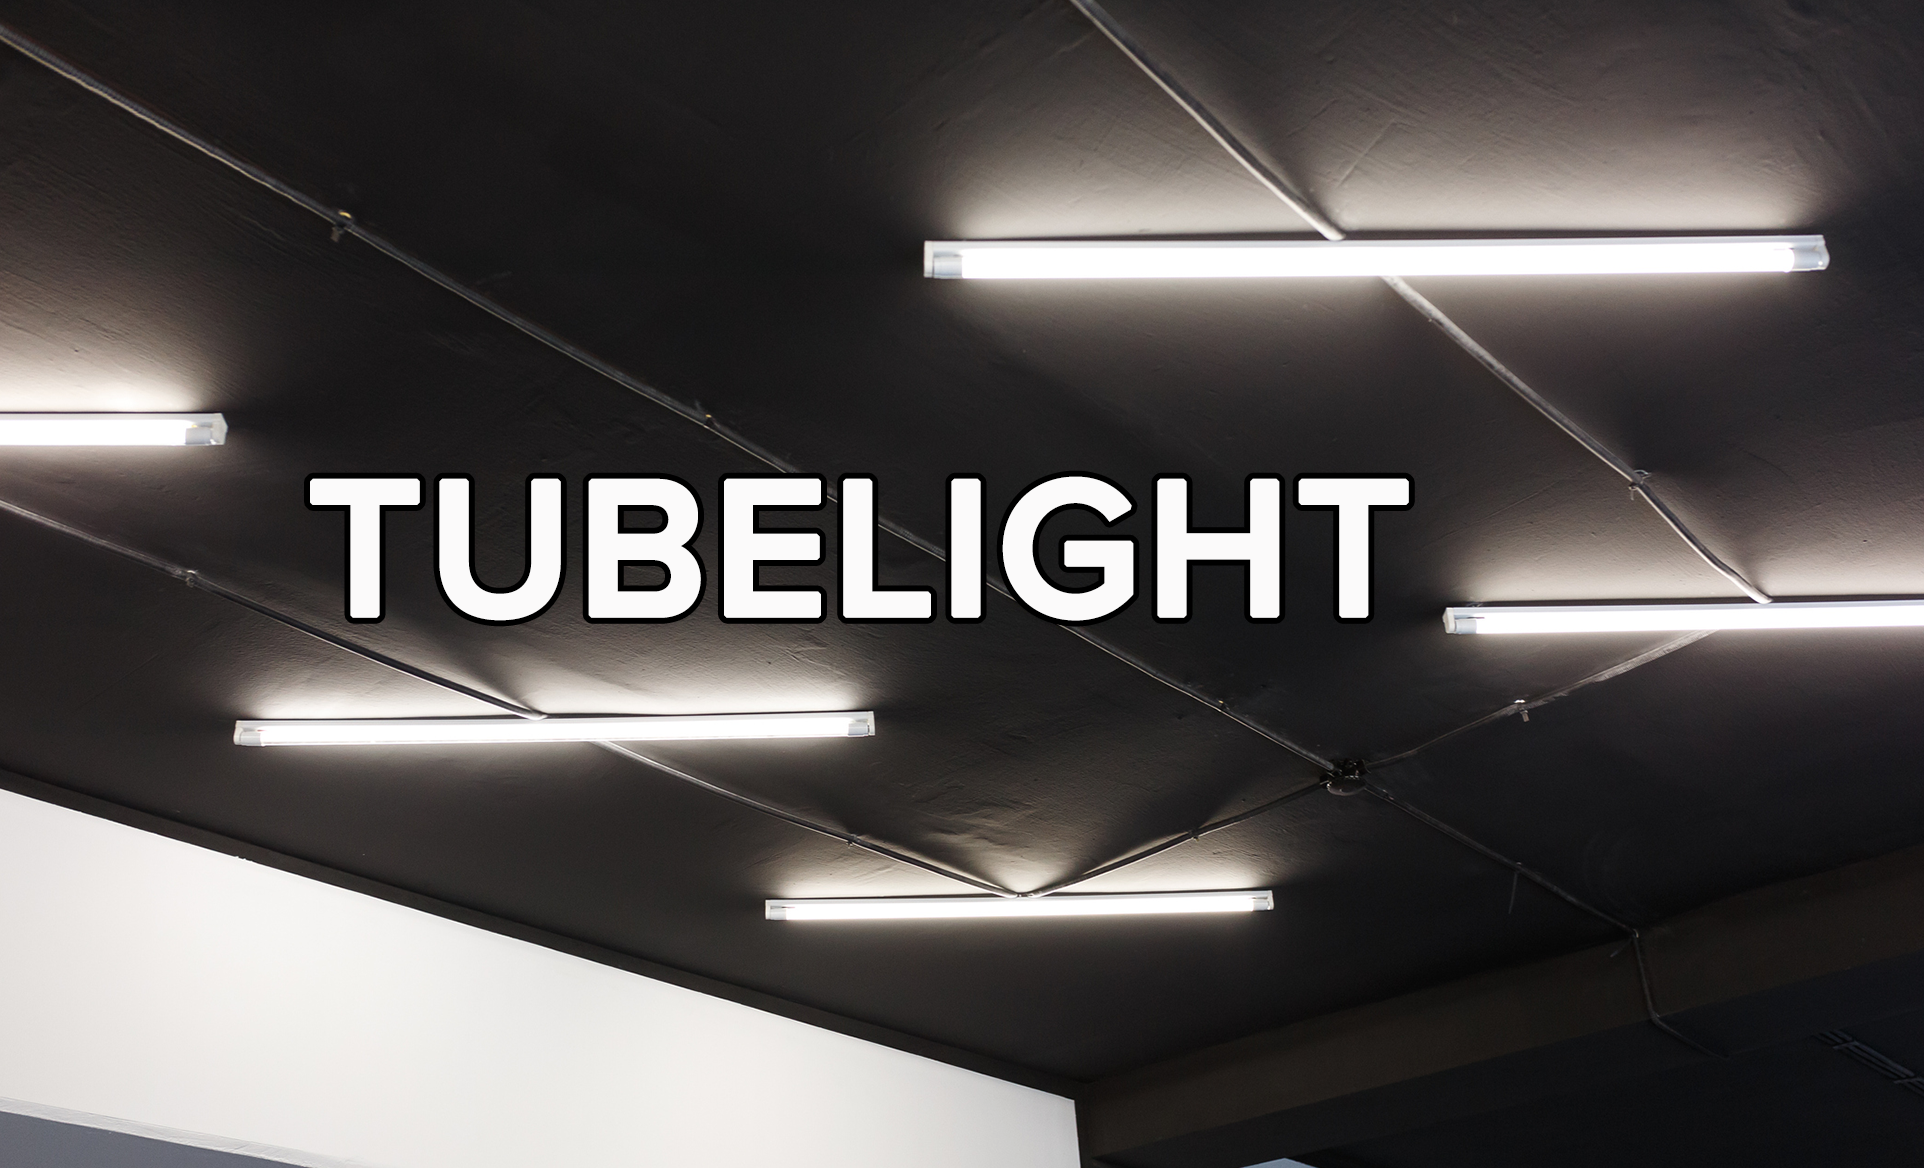 Several illuminated tubelights on a ceiling